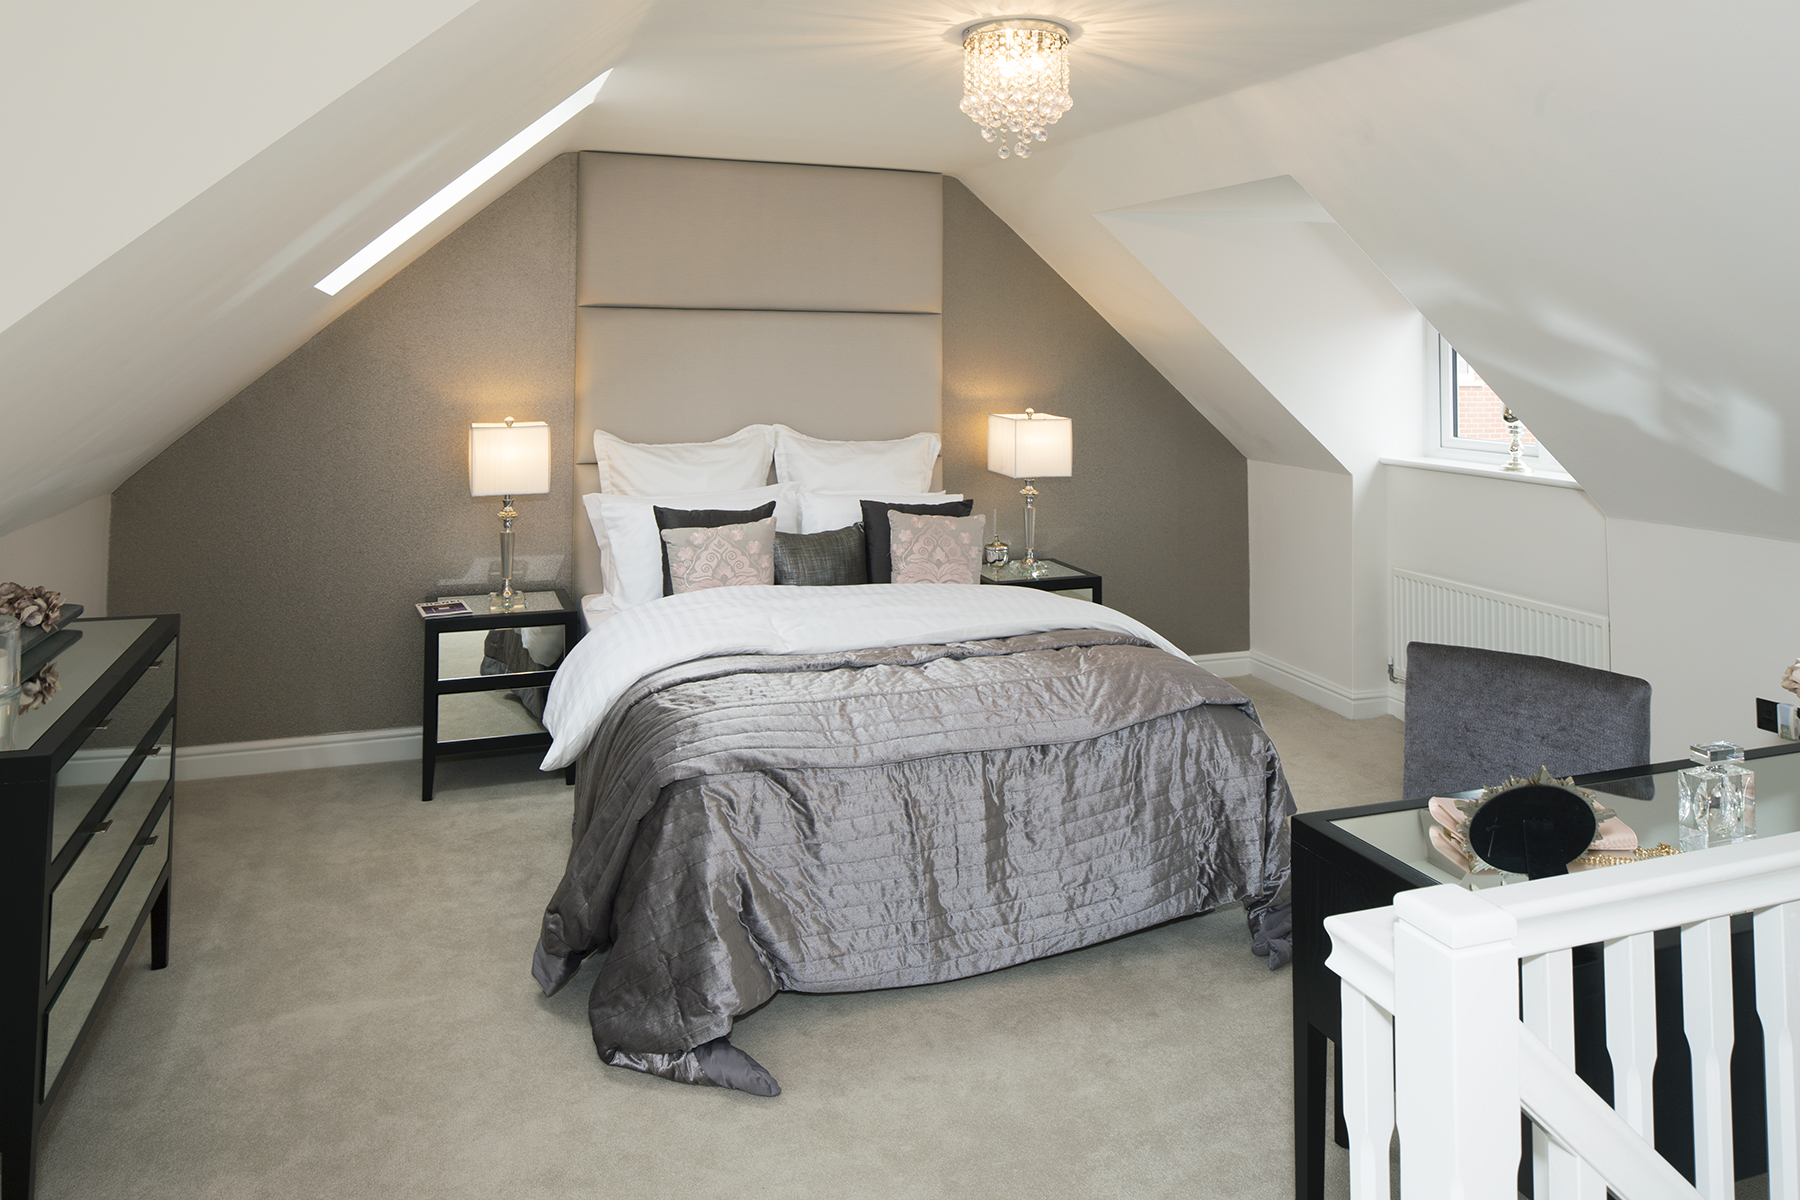 TWWL_LoddonPark_TheWalnut_Plot 12_Bedroom1_1